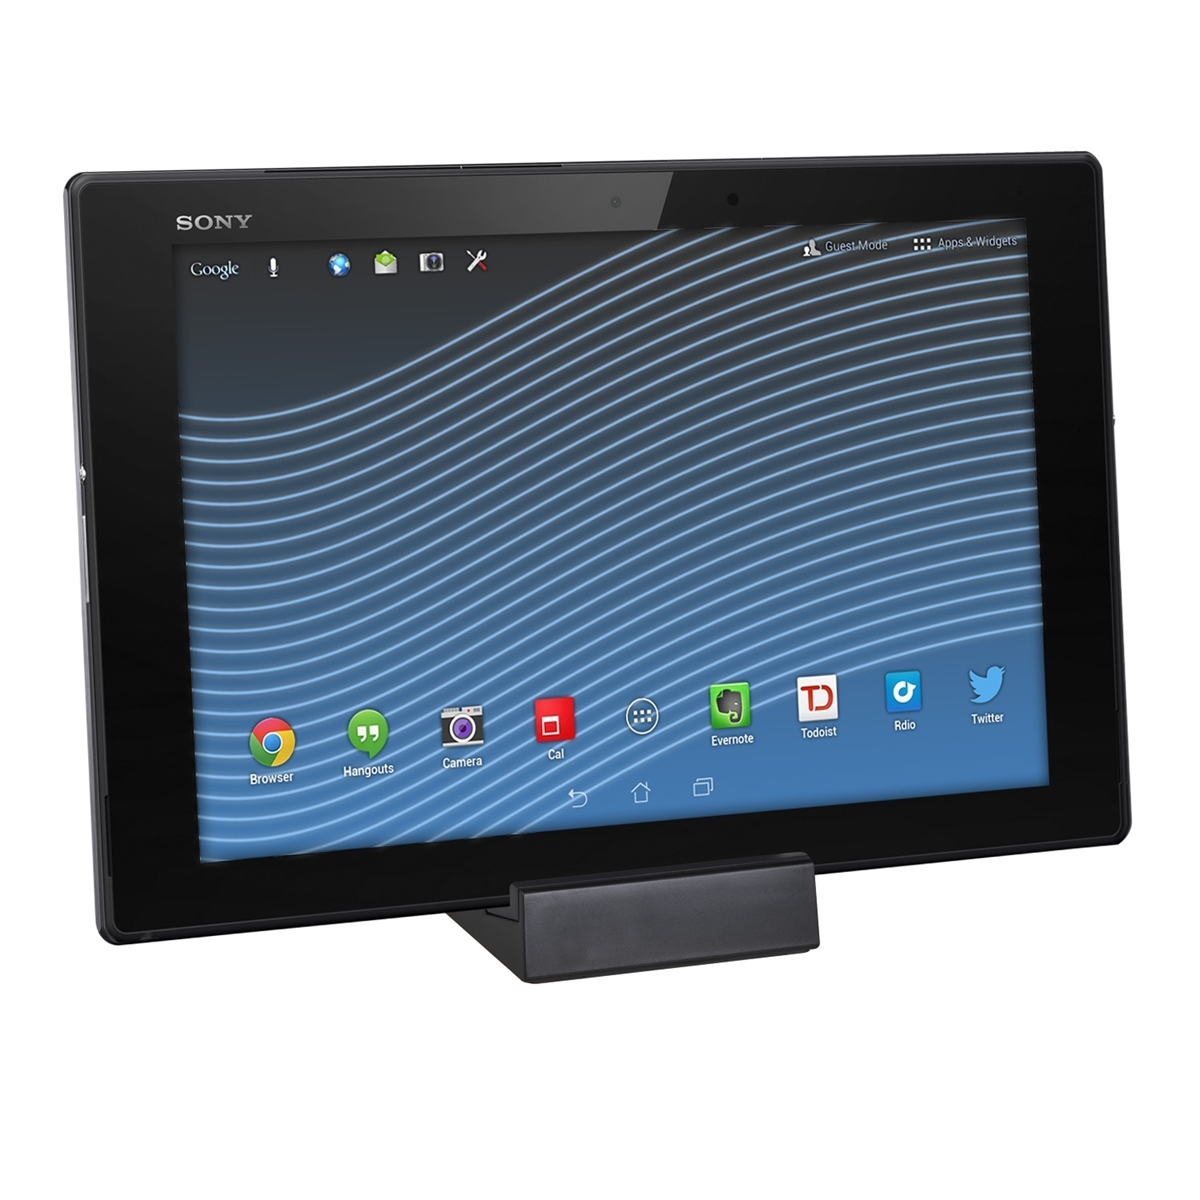 kwmobile lade station f r sony xperia tablet z2 z3 tablet compact magnet dock. Black Bedroom Furniture Sets. Home Design Ideas